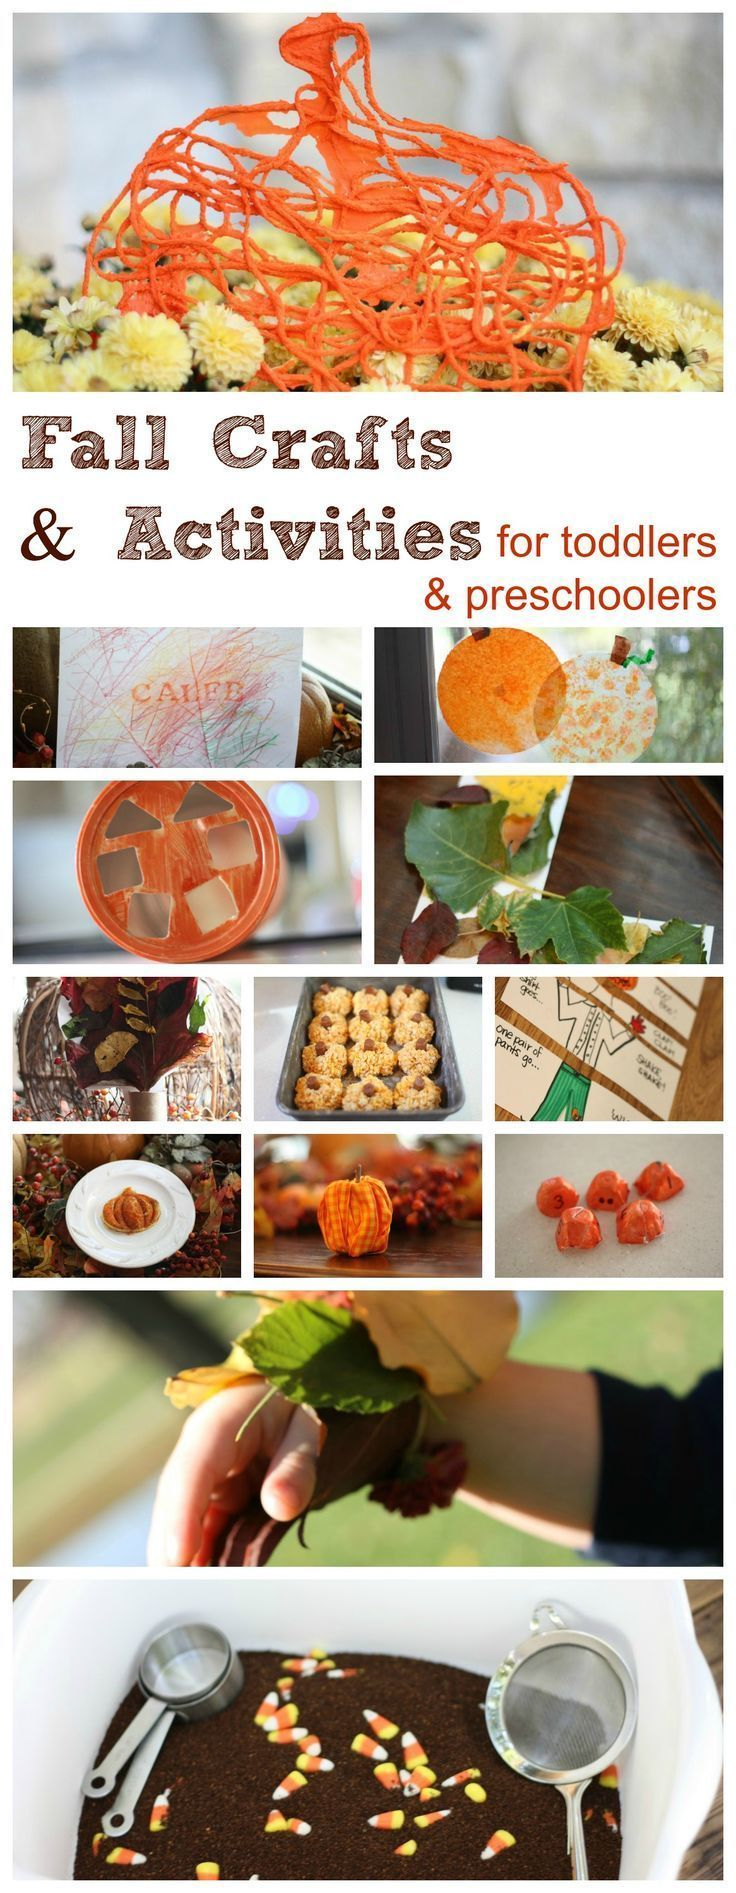 44+ Fall crafts for toddlers age 3 information